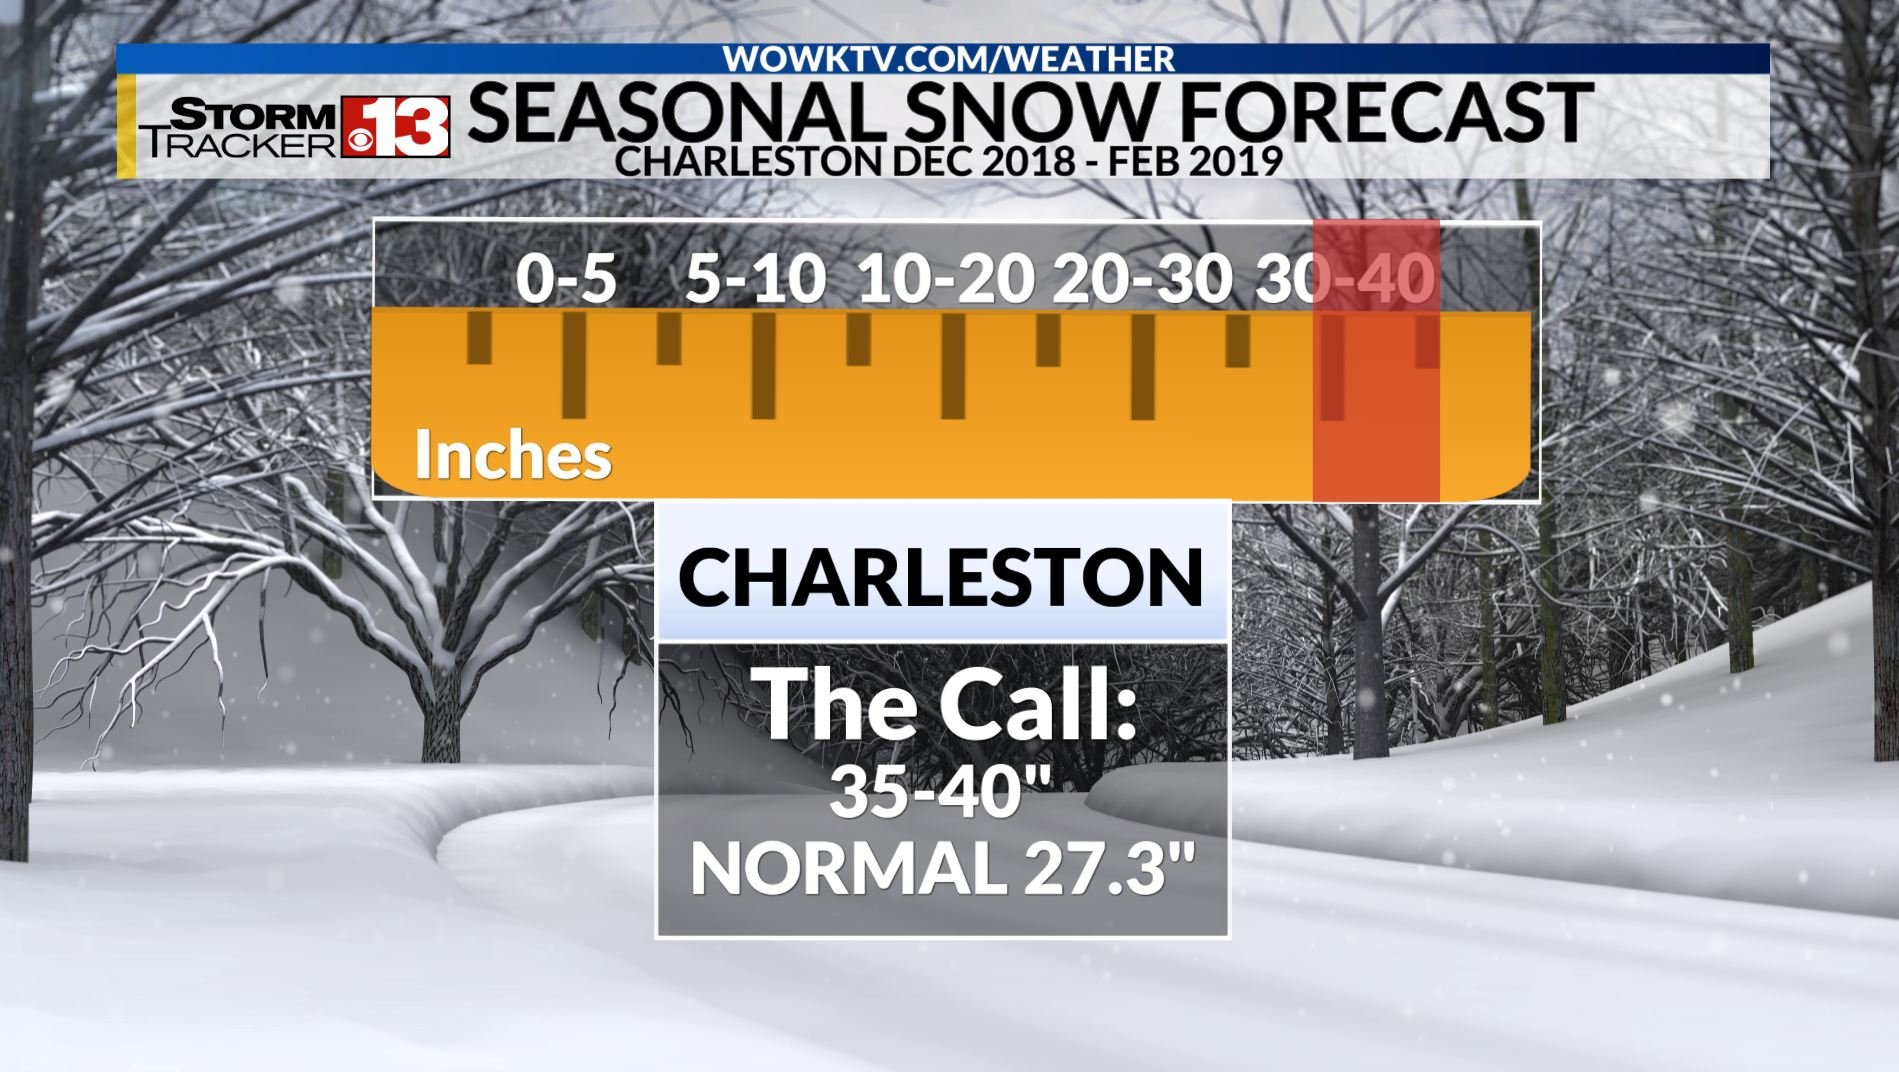 Tough Call: Stormtracker 13 Forecasters Lean Toward More Snow and Cold